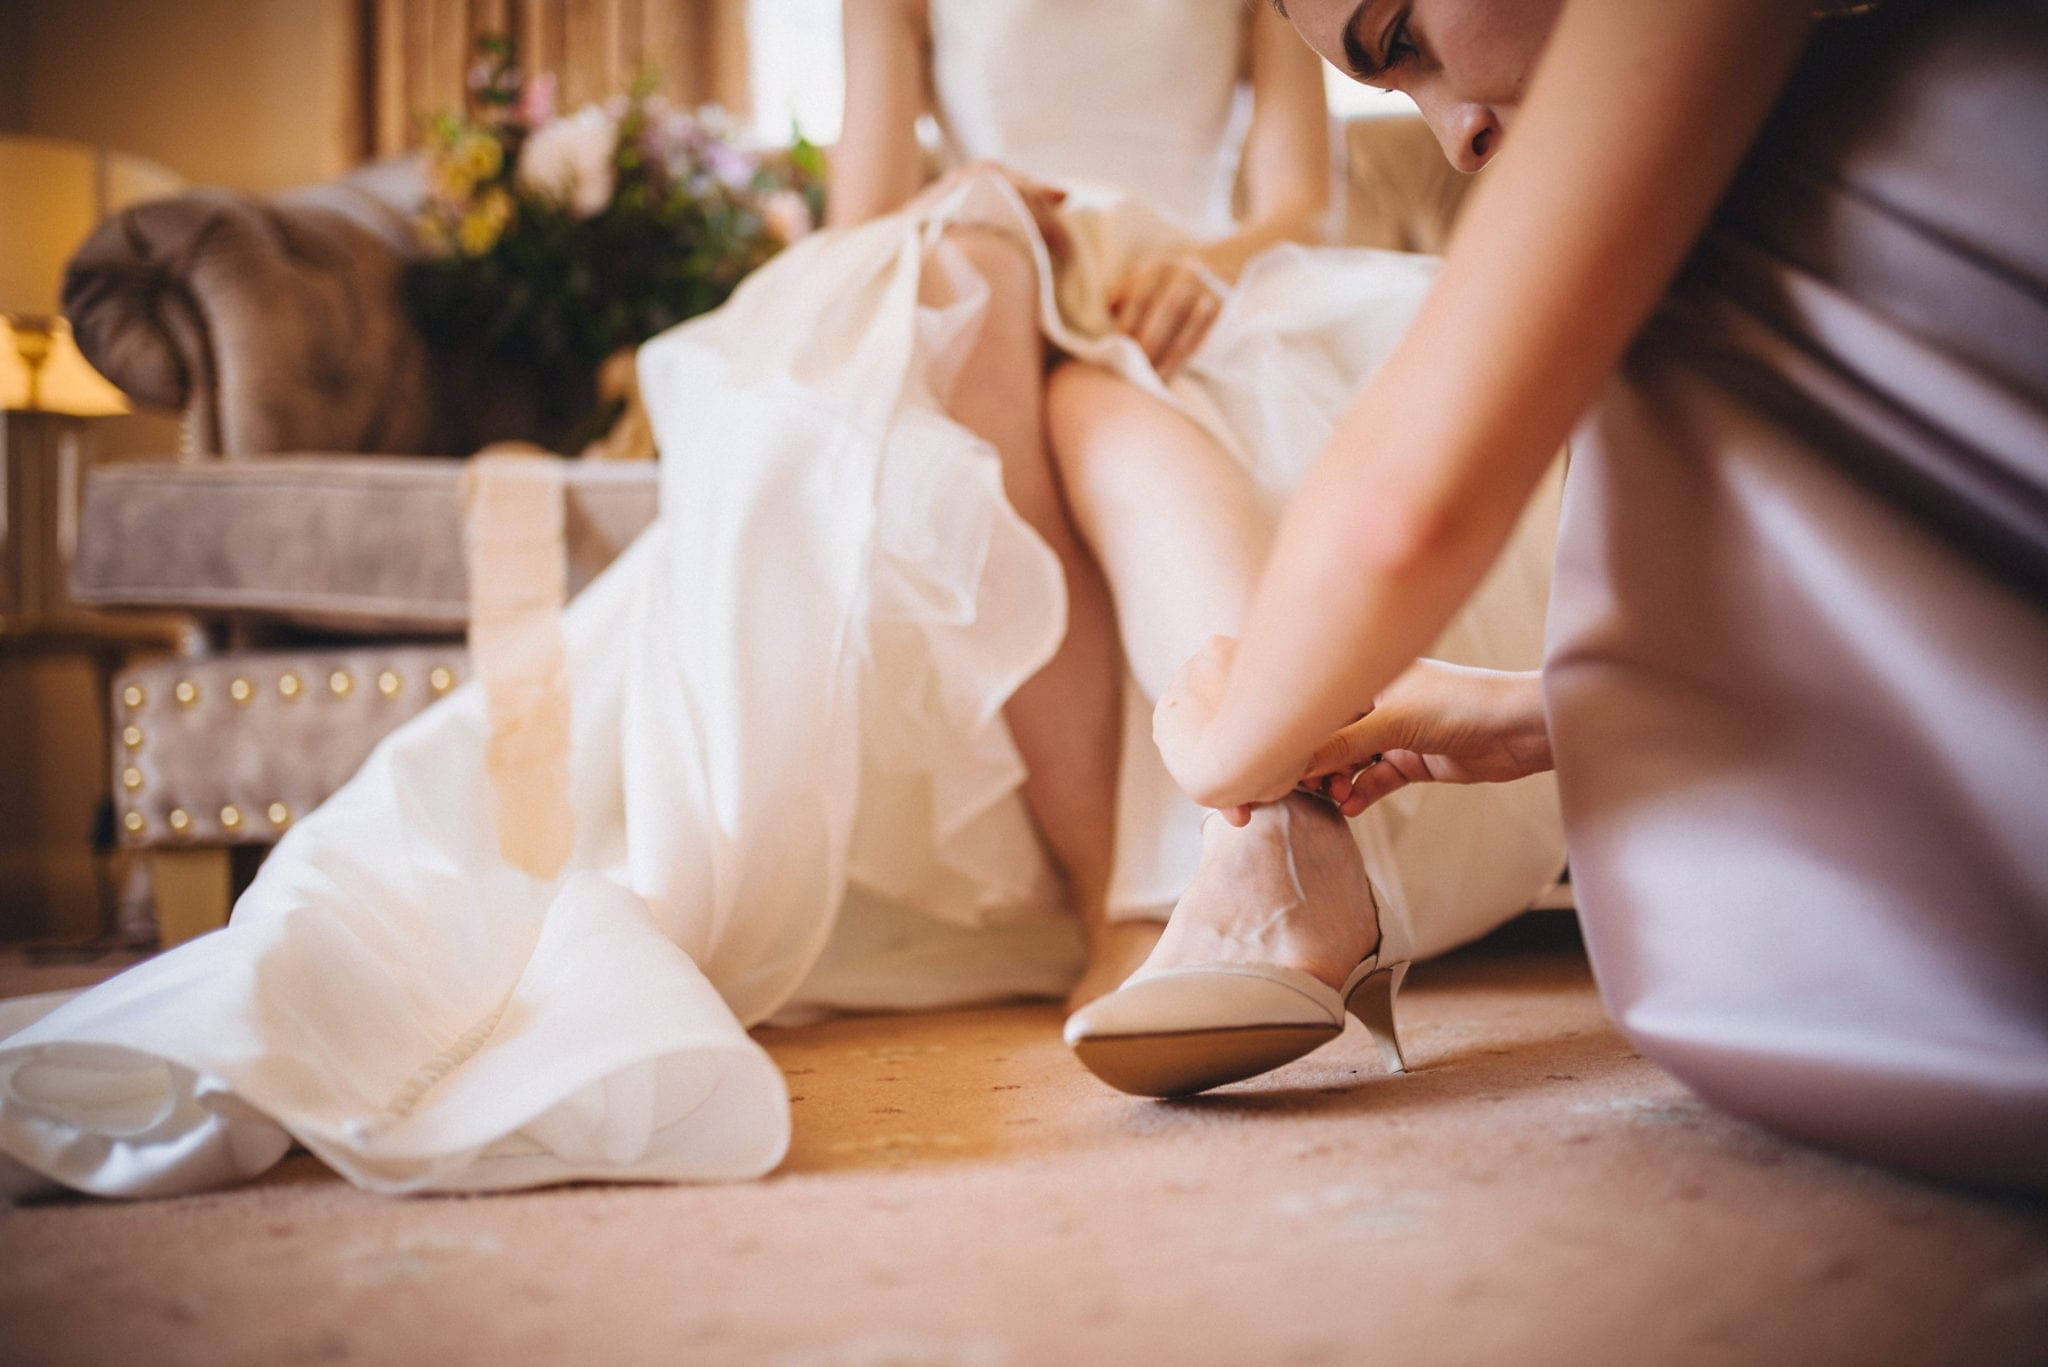 Bridesmaid fastens bride's shoe